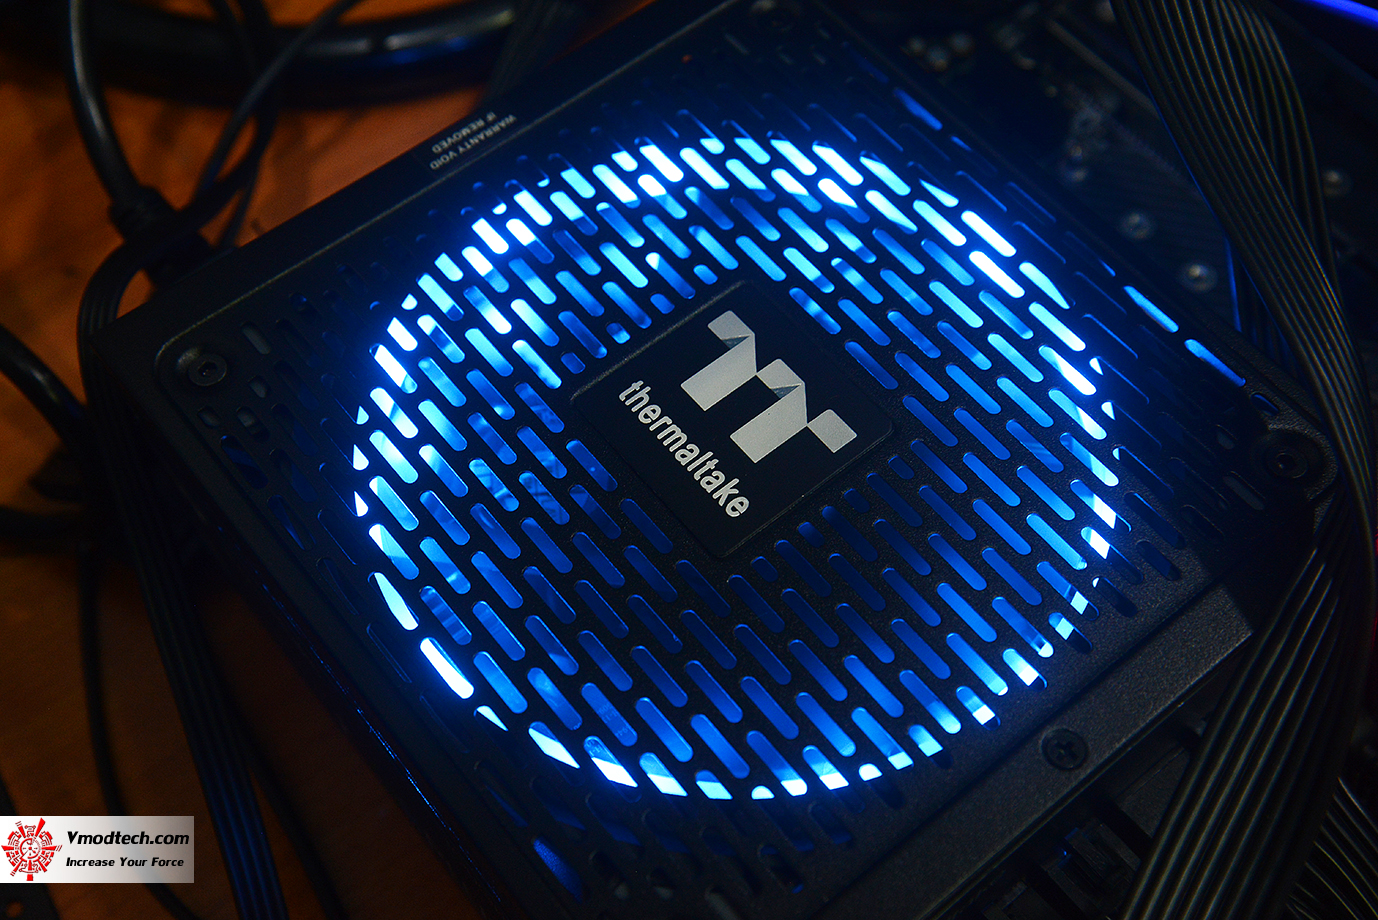 dsc 1937 Thermaltake Toughpower iRGB PLUS 1050W Platinum Review